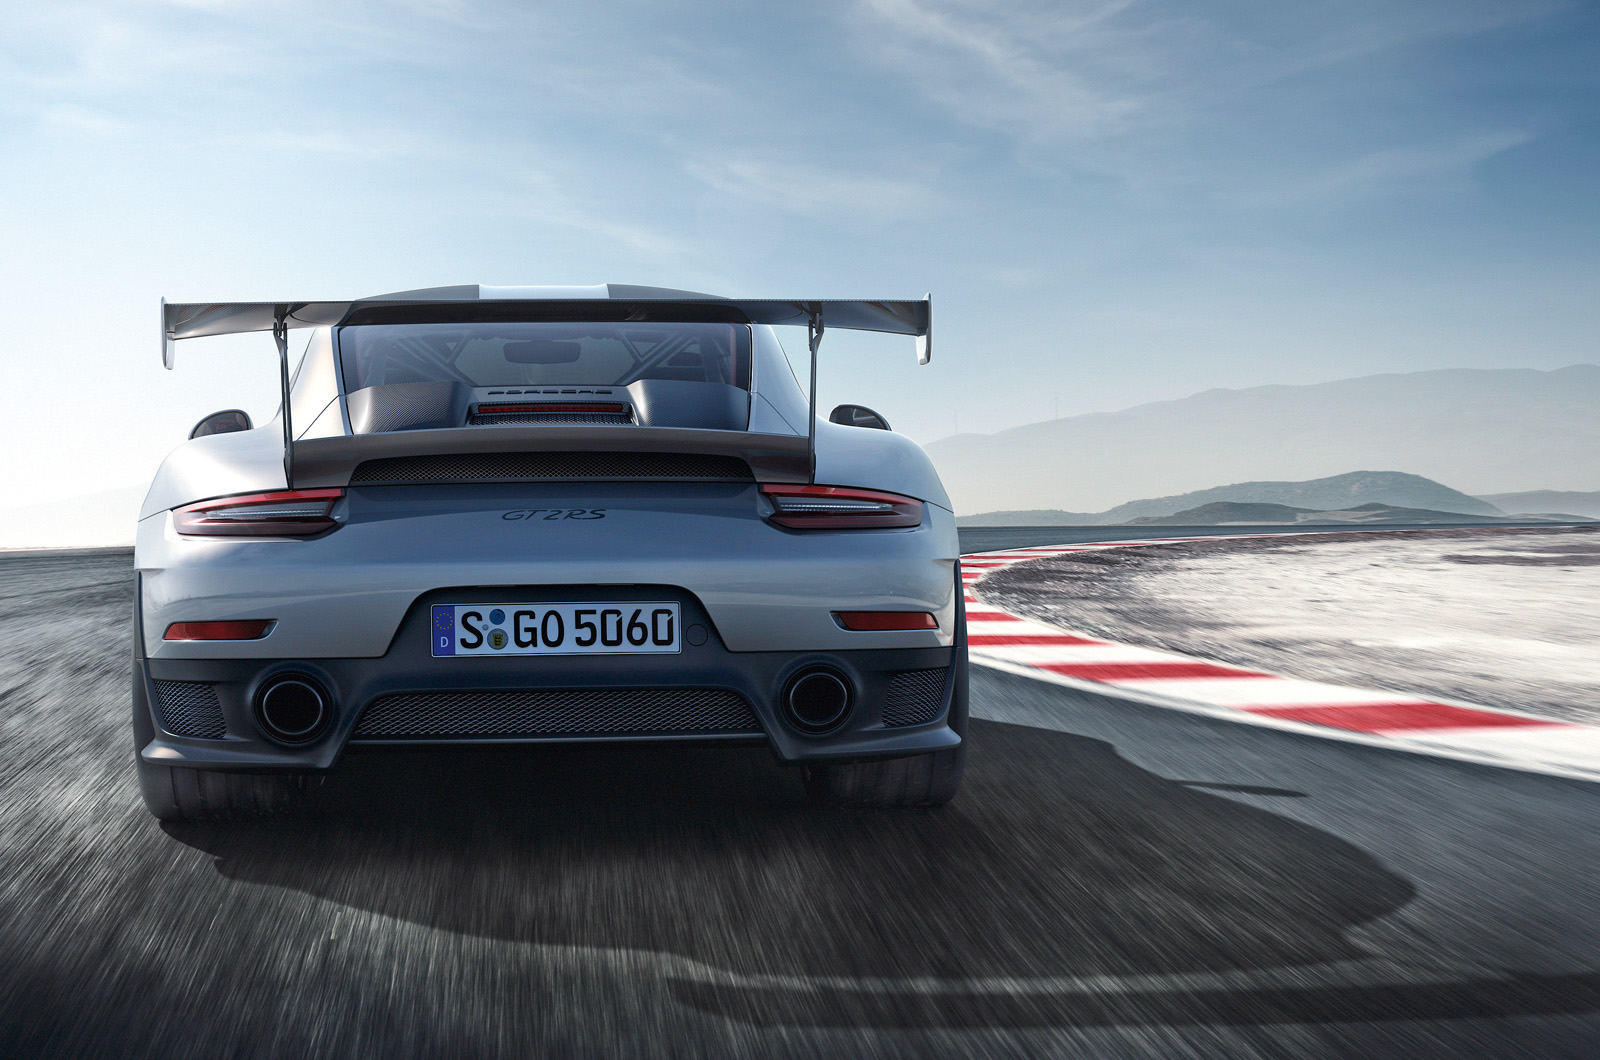 Porsche 911 gt3 rs review 2017 autocar - Mirroring The Strategy Taken With The 918 Spyder Porsche Is Offering A 21 042 Weissach Package That Takes An Extra 30kg Off The Car S Overall Weight